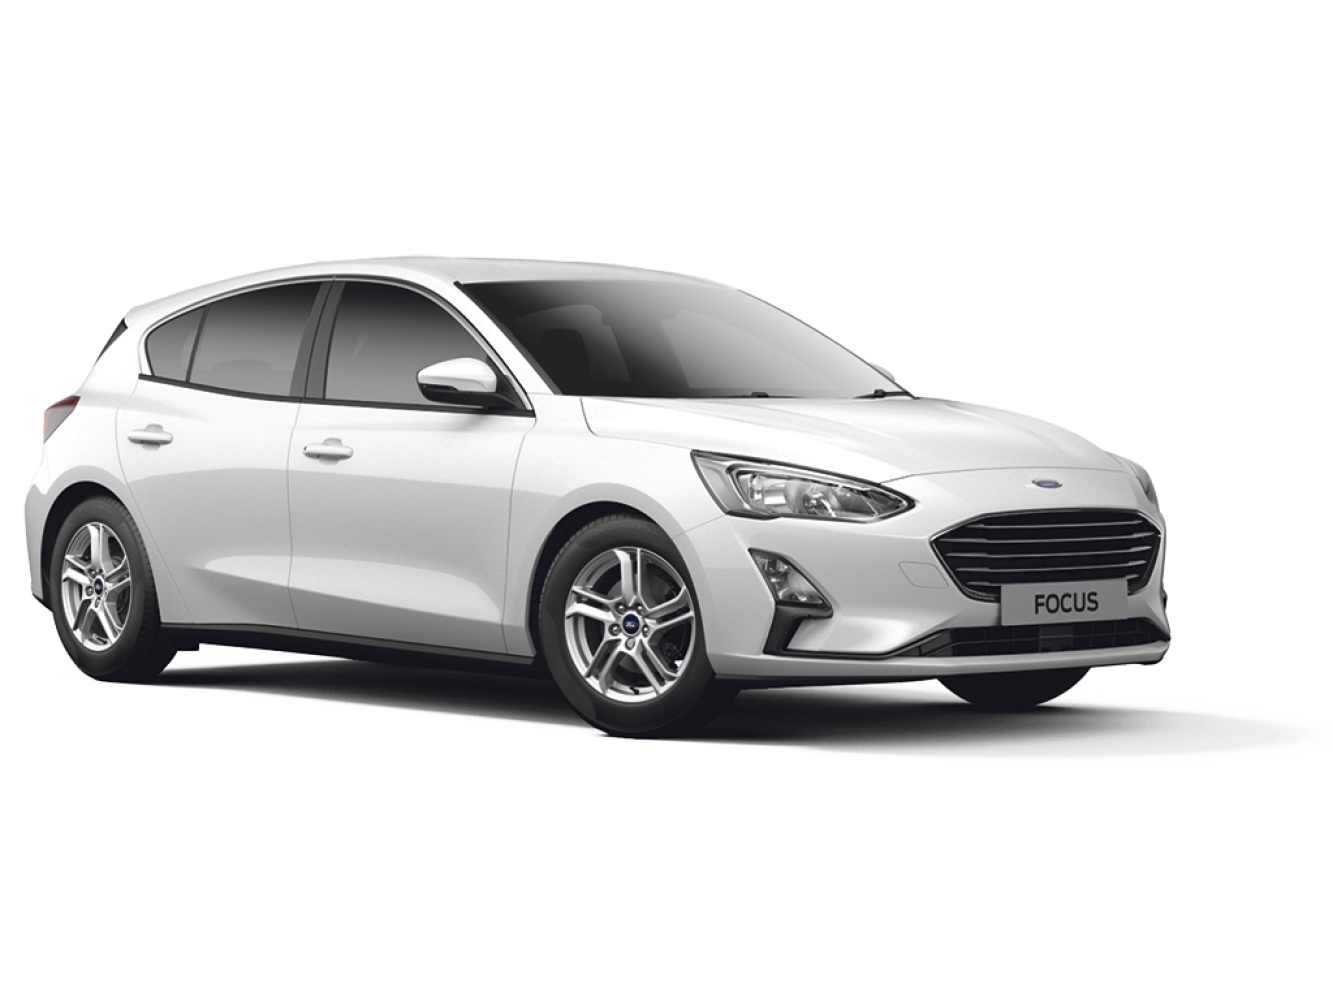 new ford focus 1 0 ecoboost 100 zetec 5dr petrol hatchback. Black Bedroom Furniture Sets. Home Design Ideas